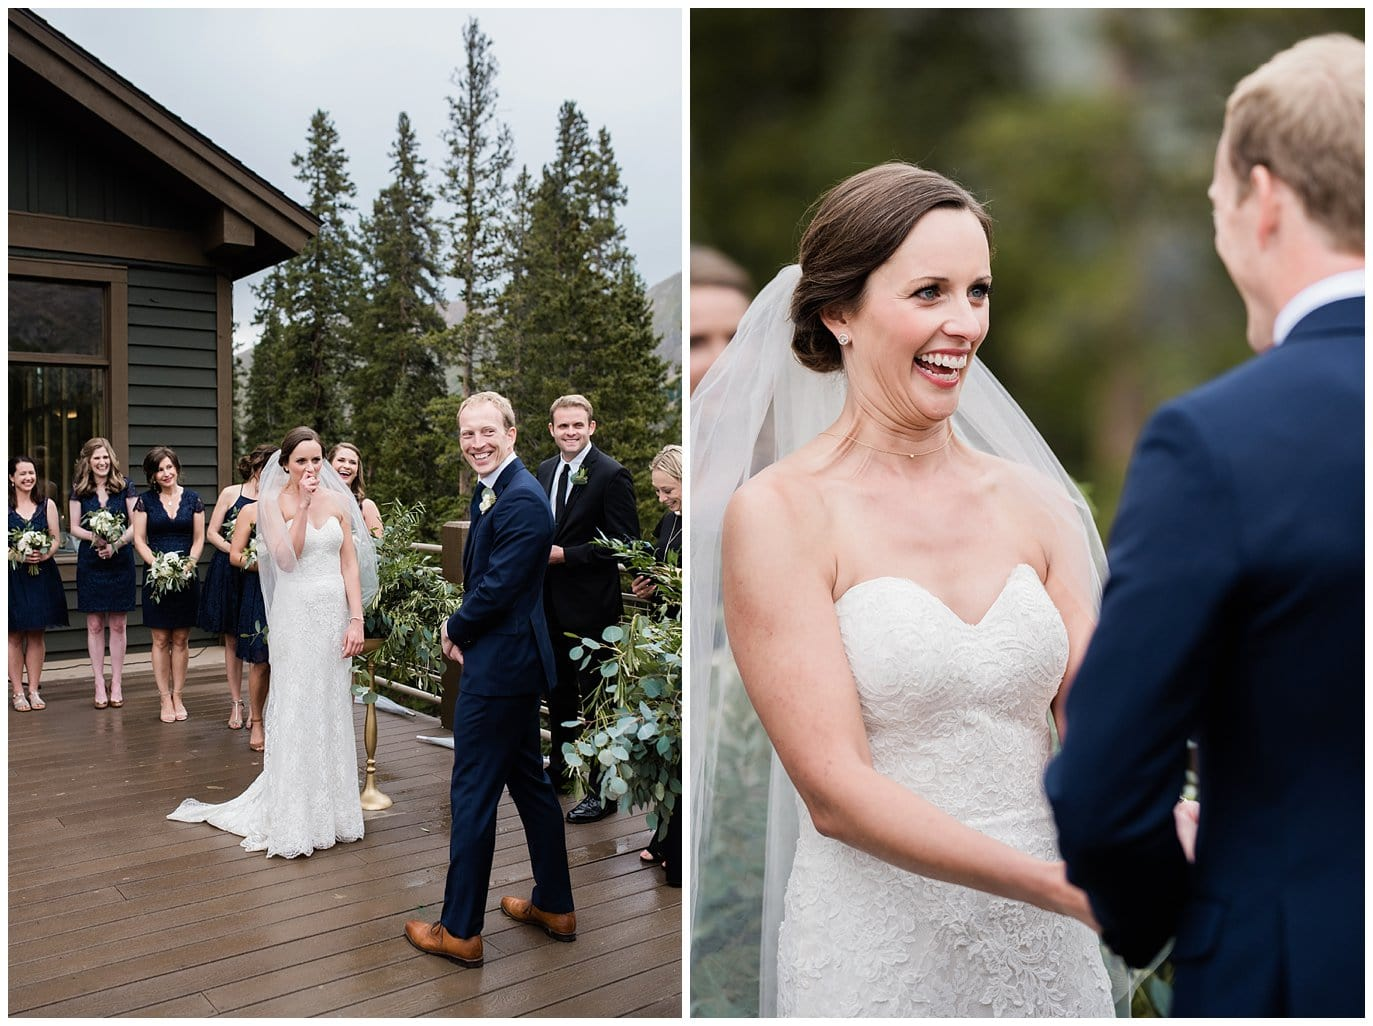 beautiful ceremony in the rain at Arapahoe Basin Black Mountain Lodge Wedding by Silverthorne Wedding Photographer Jennie Crate